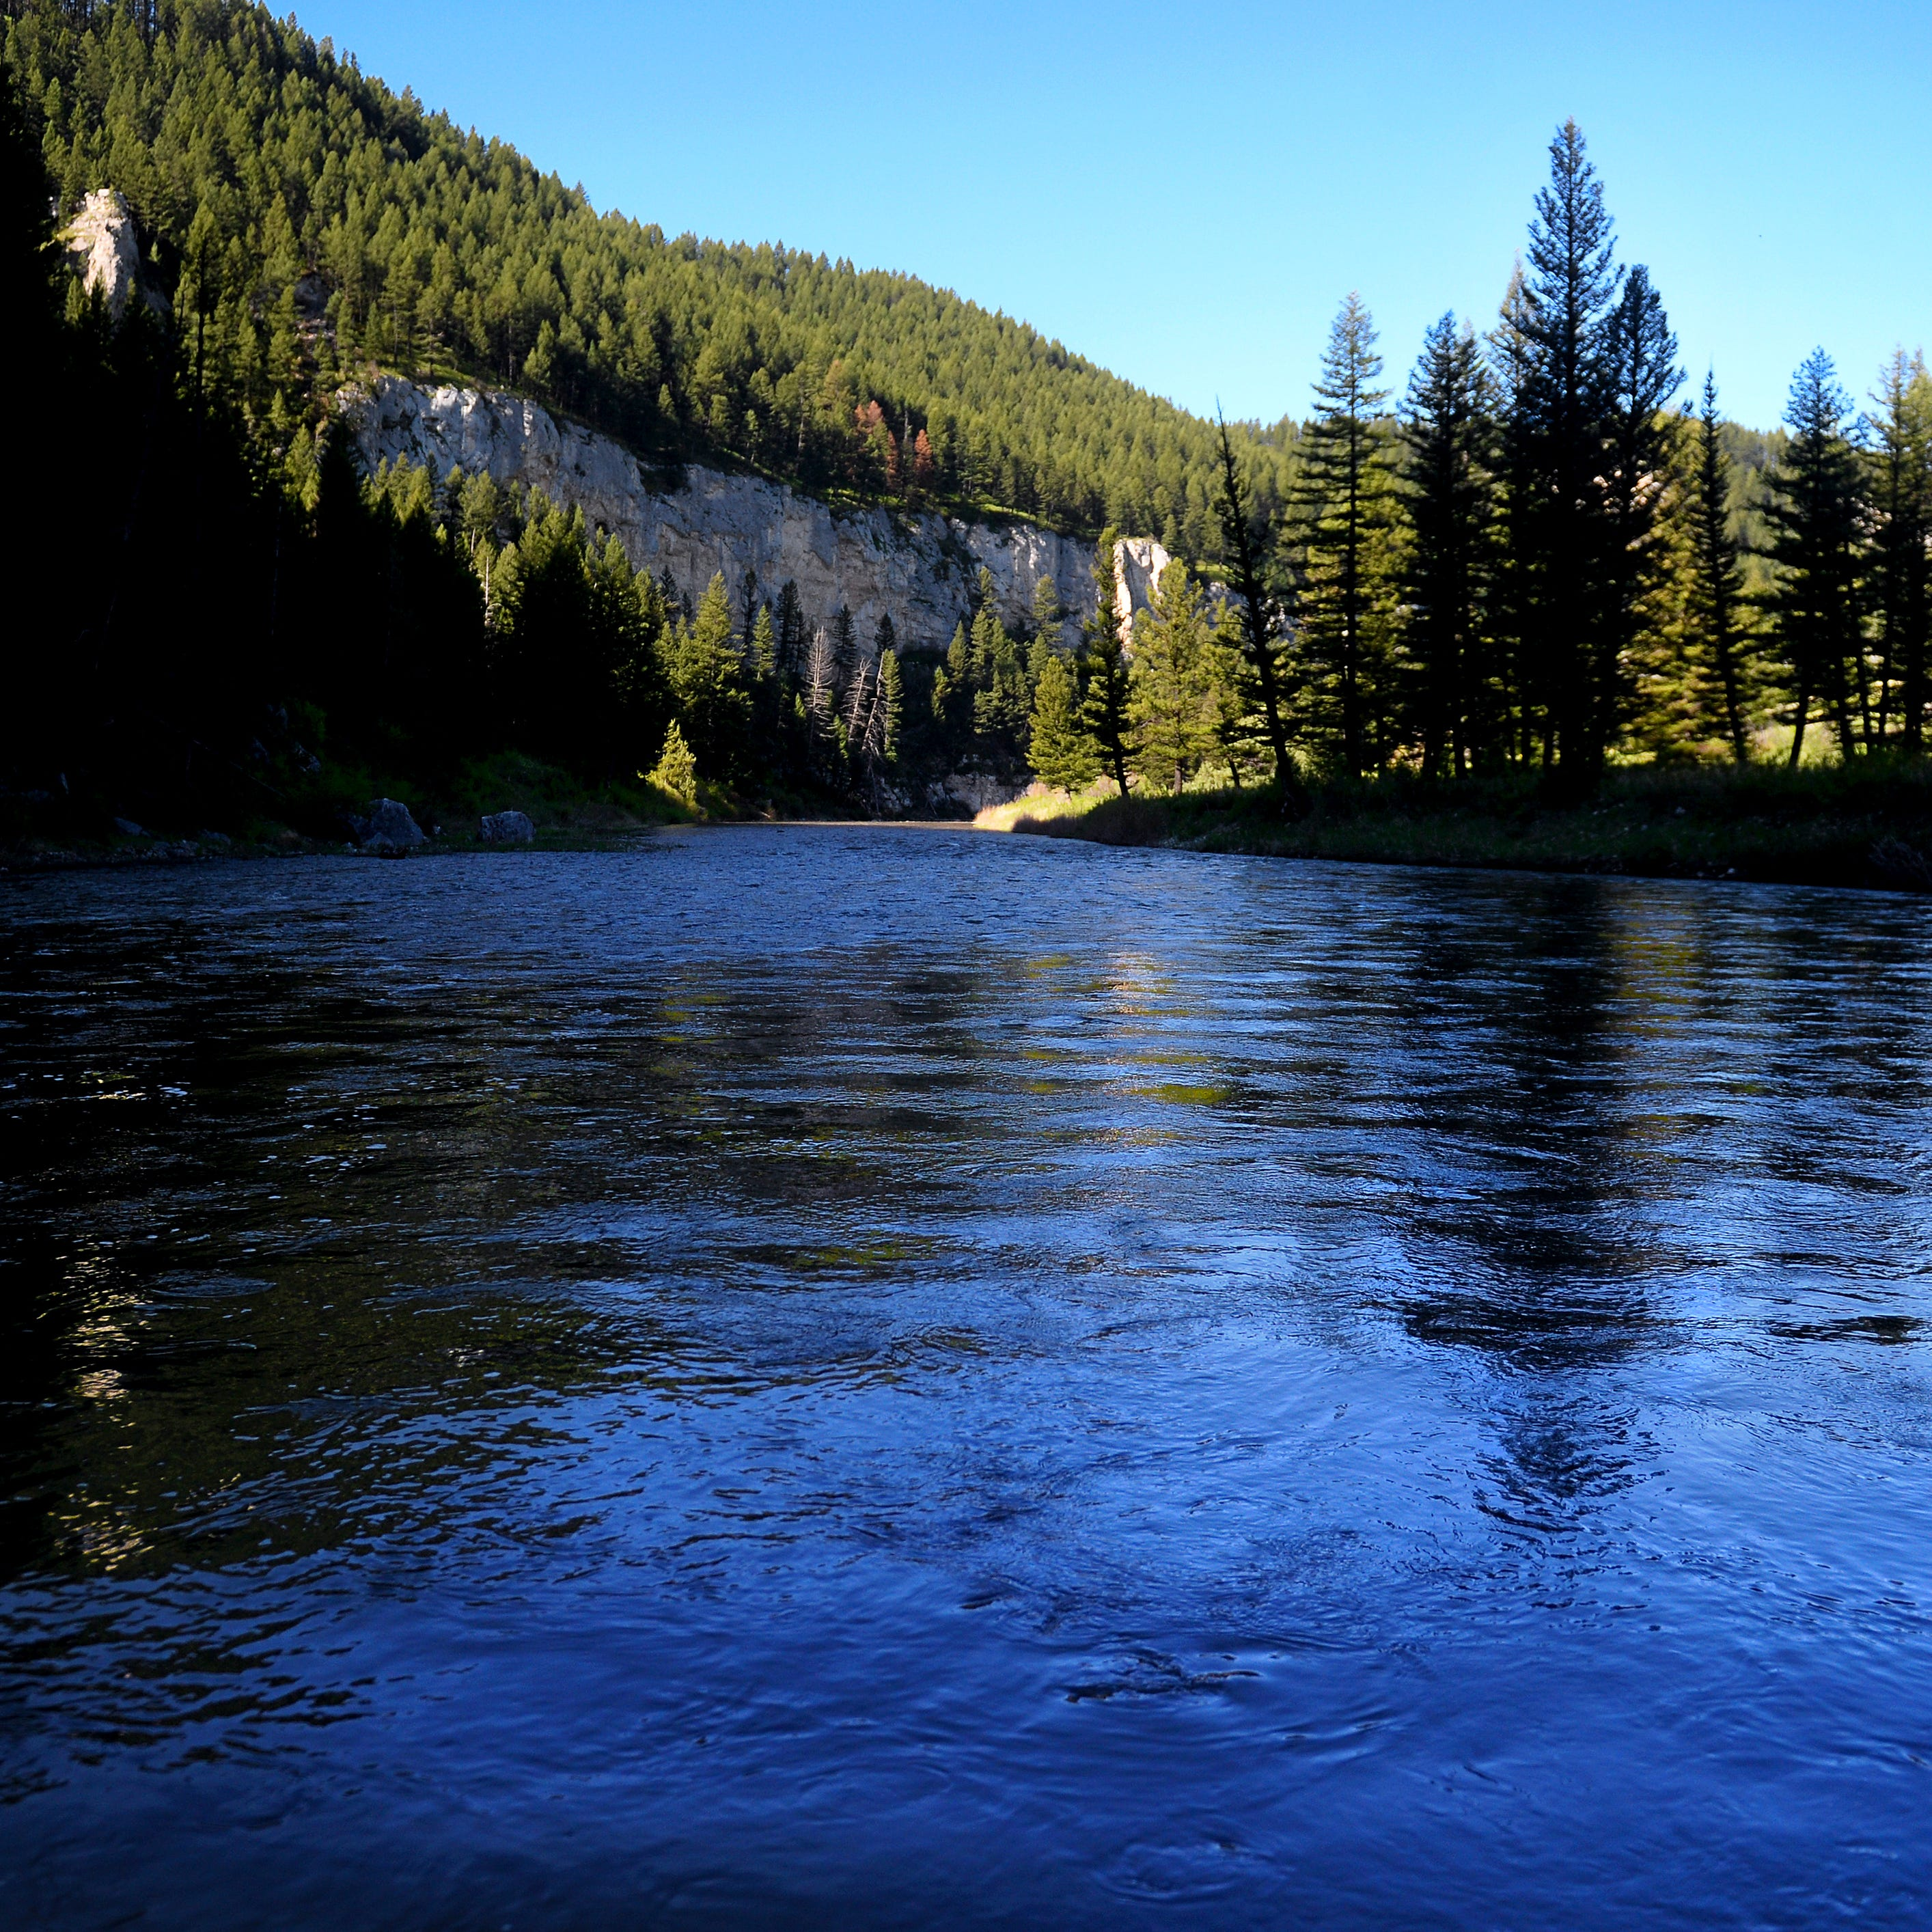 Outdoors briefs: Get your permits to float the Smith River